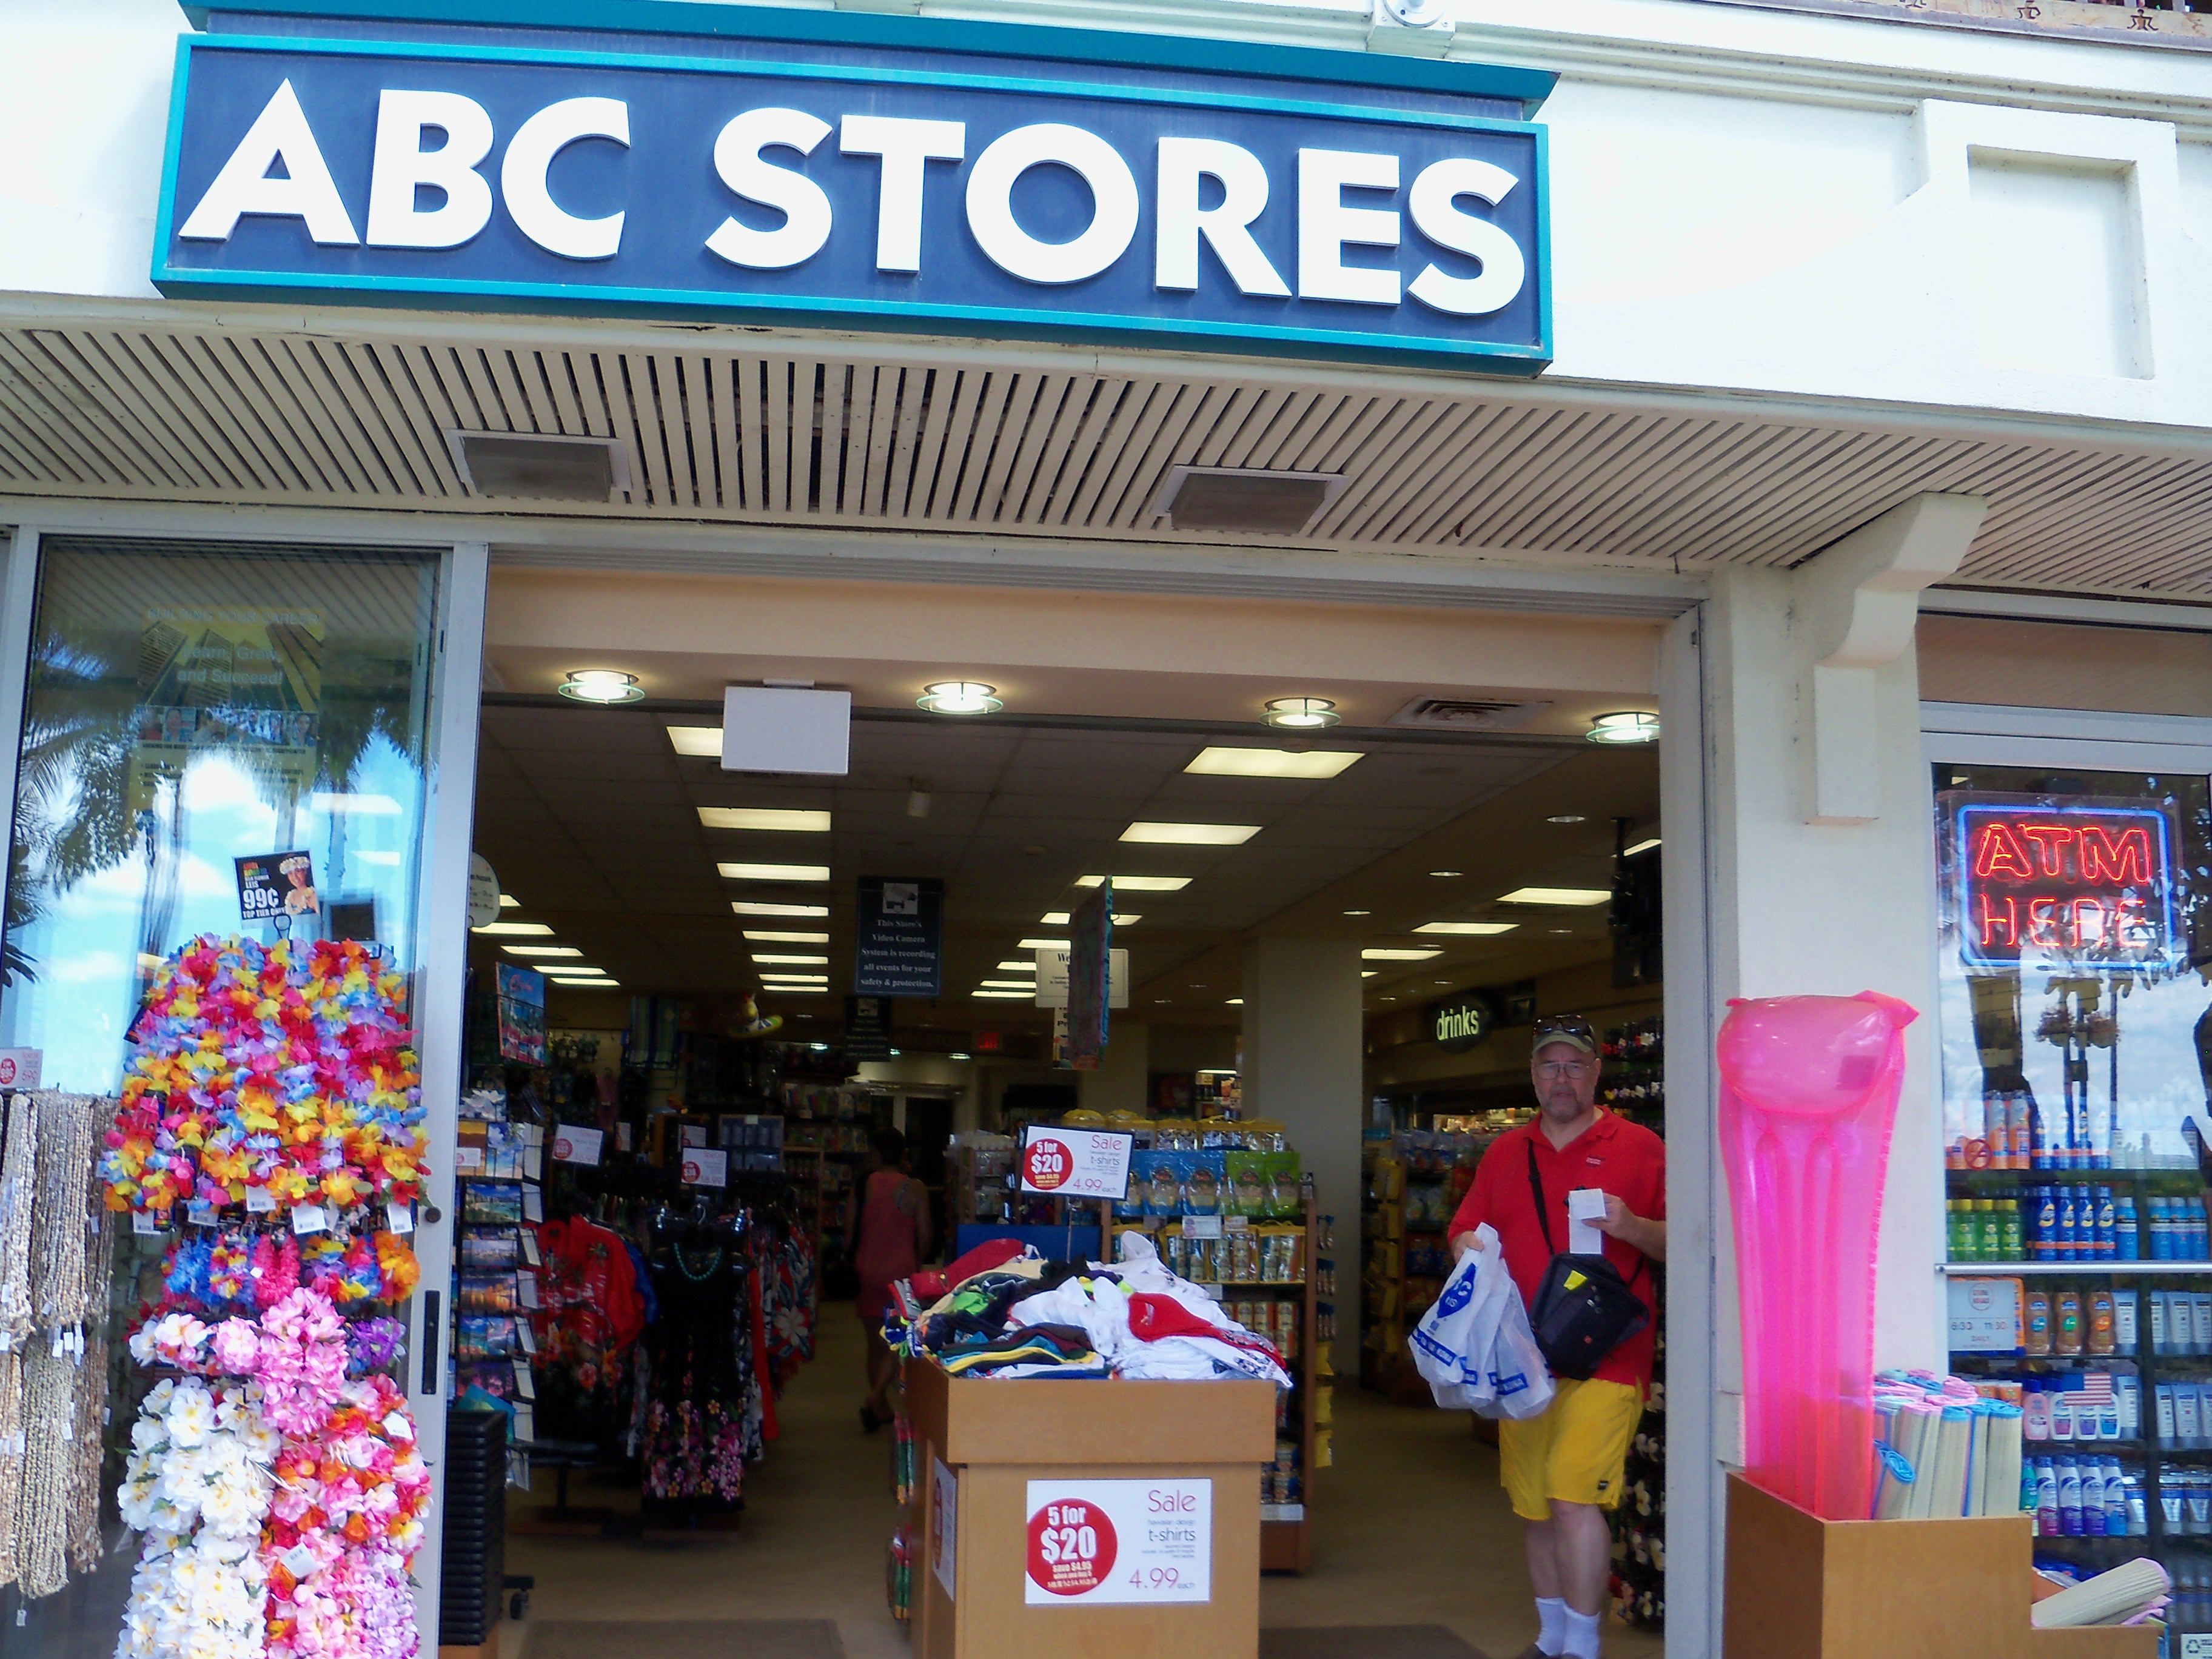 ABC Stores is a chain of convenience stores based in Honolulu owned by MNS Ltd. The chain operates 73 stores, 57 of which are located in the state of Hawaii, with the remaining locations in the Mariana Islands and Las Vegas.